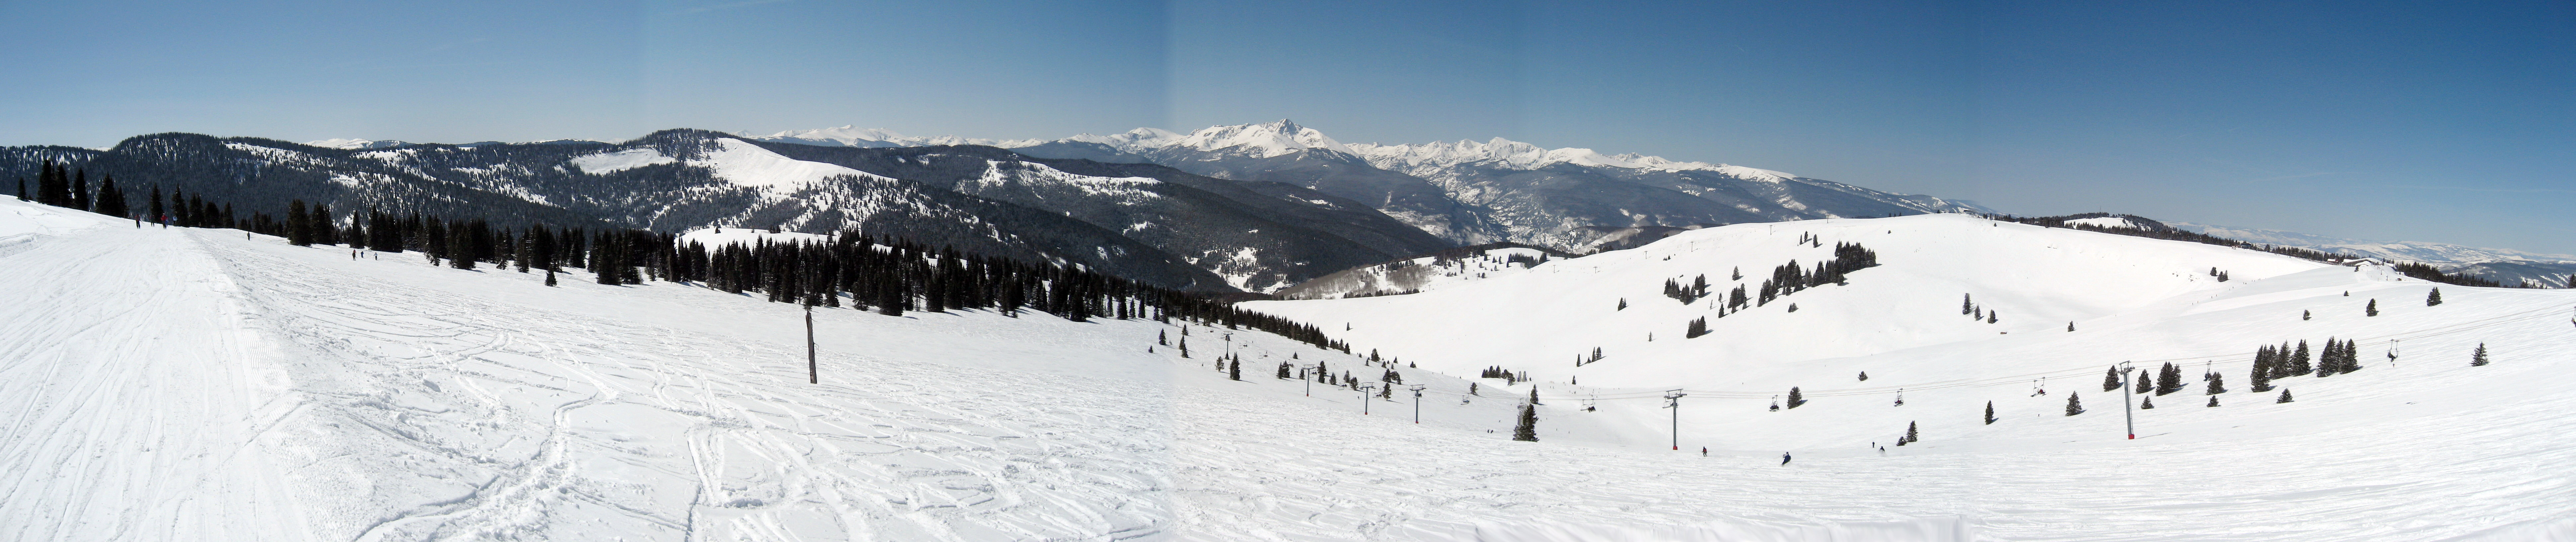 Vail ___ Resort (tourist location in Colorado) - Daily ...